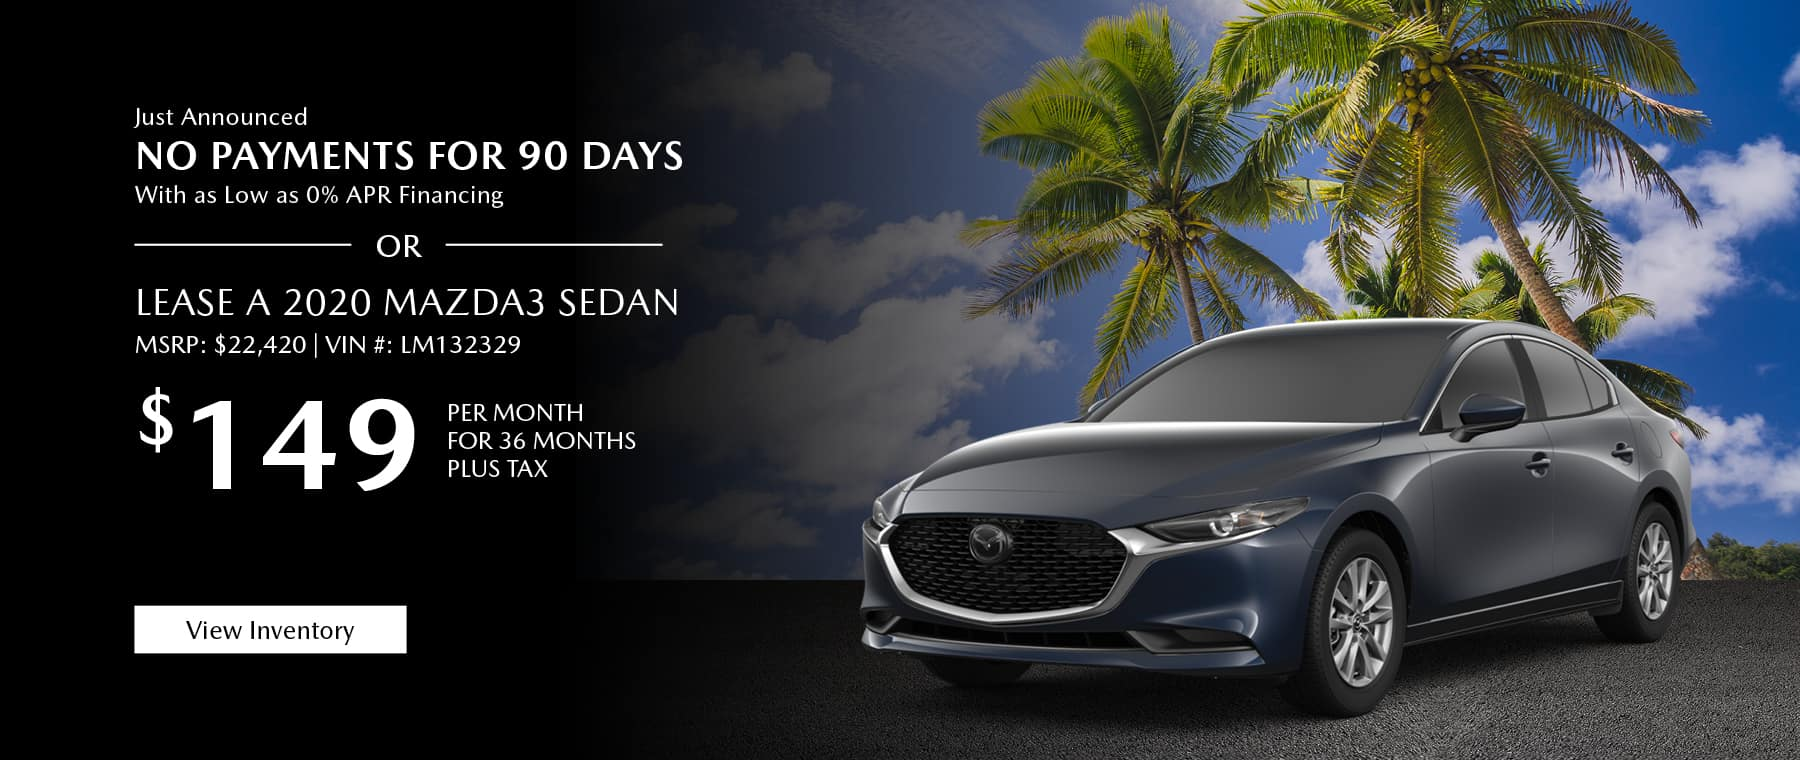 Just Announced, No payments for 90 days with as low as %0 APR financing, or lease the 2020 Mazda3 sedan for $149 per month, plus tax. View inventory.